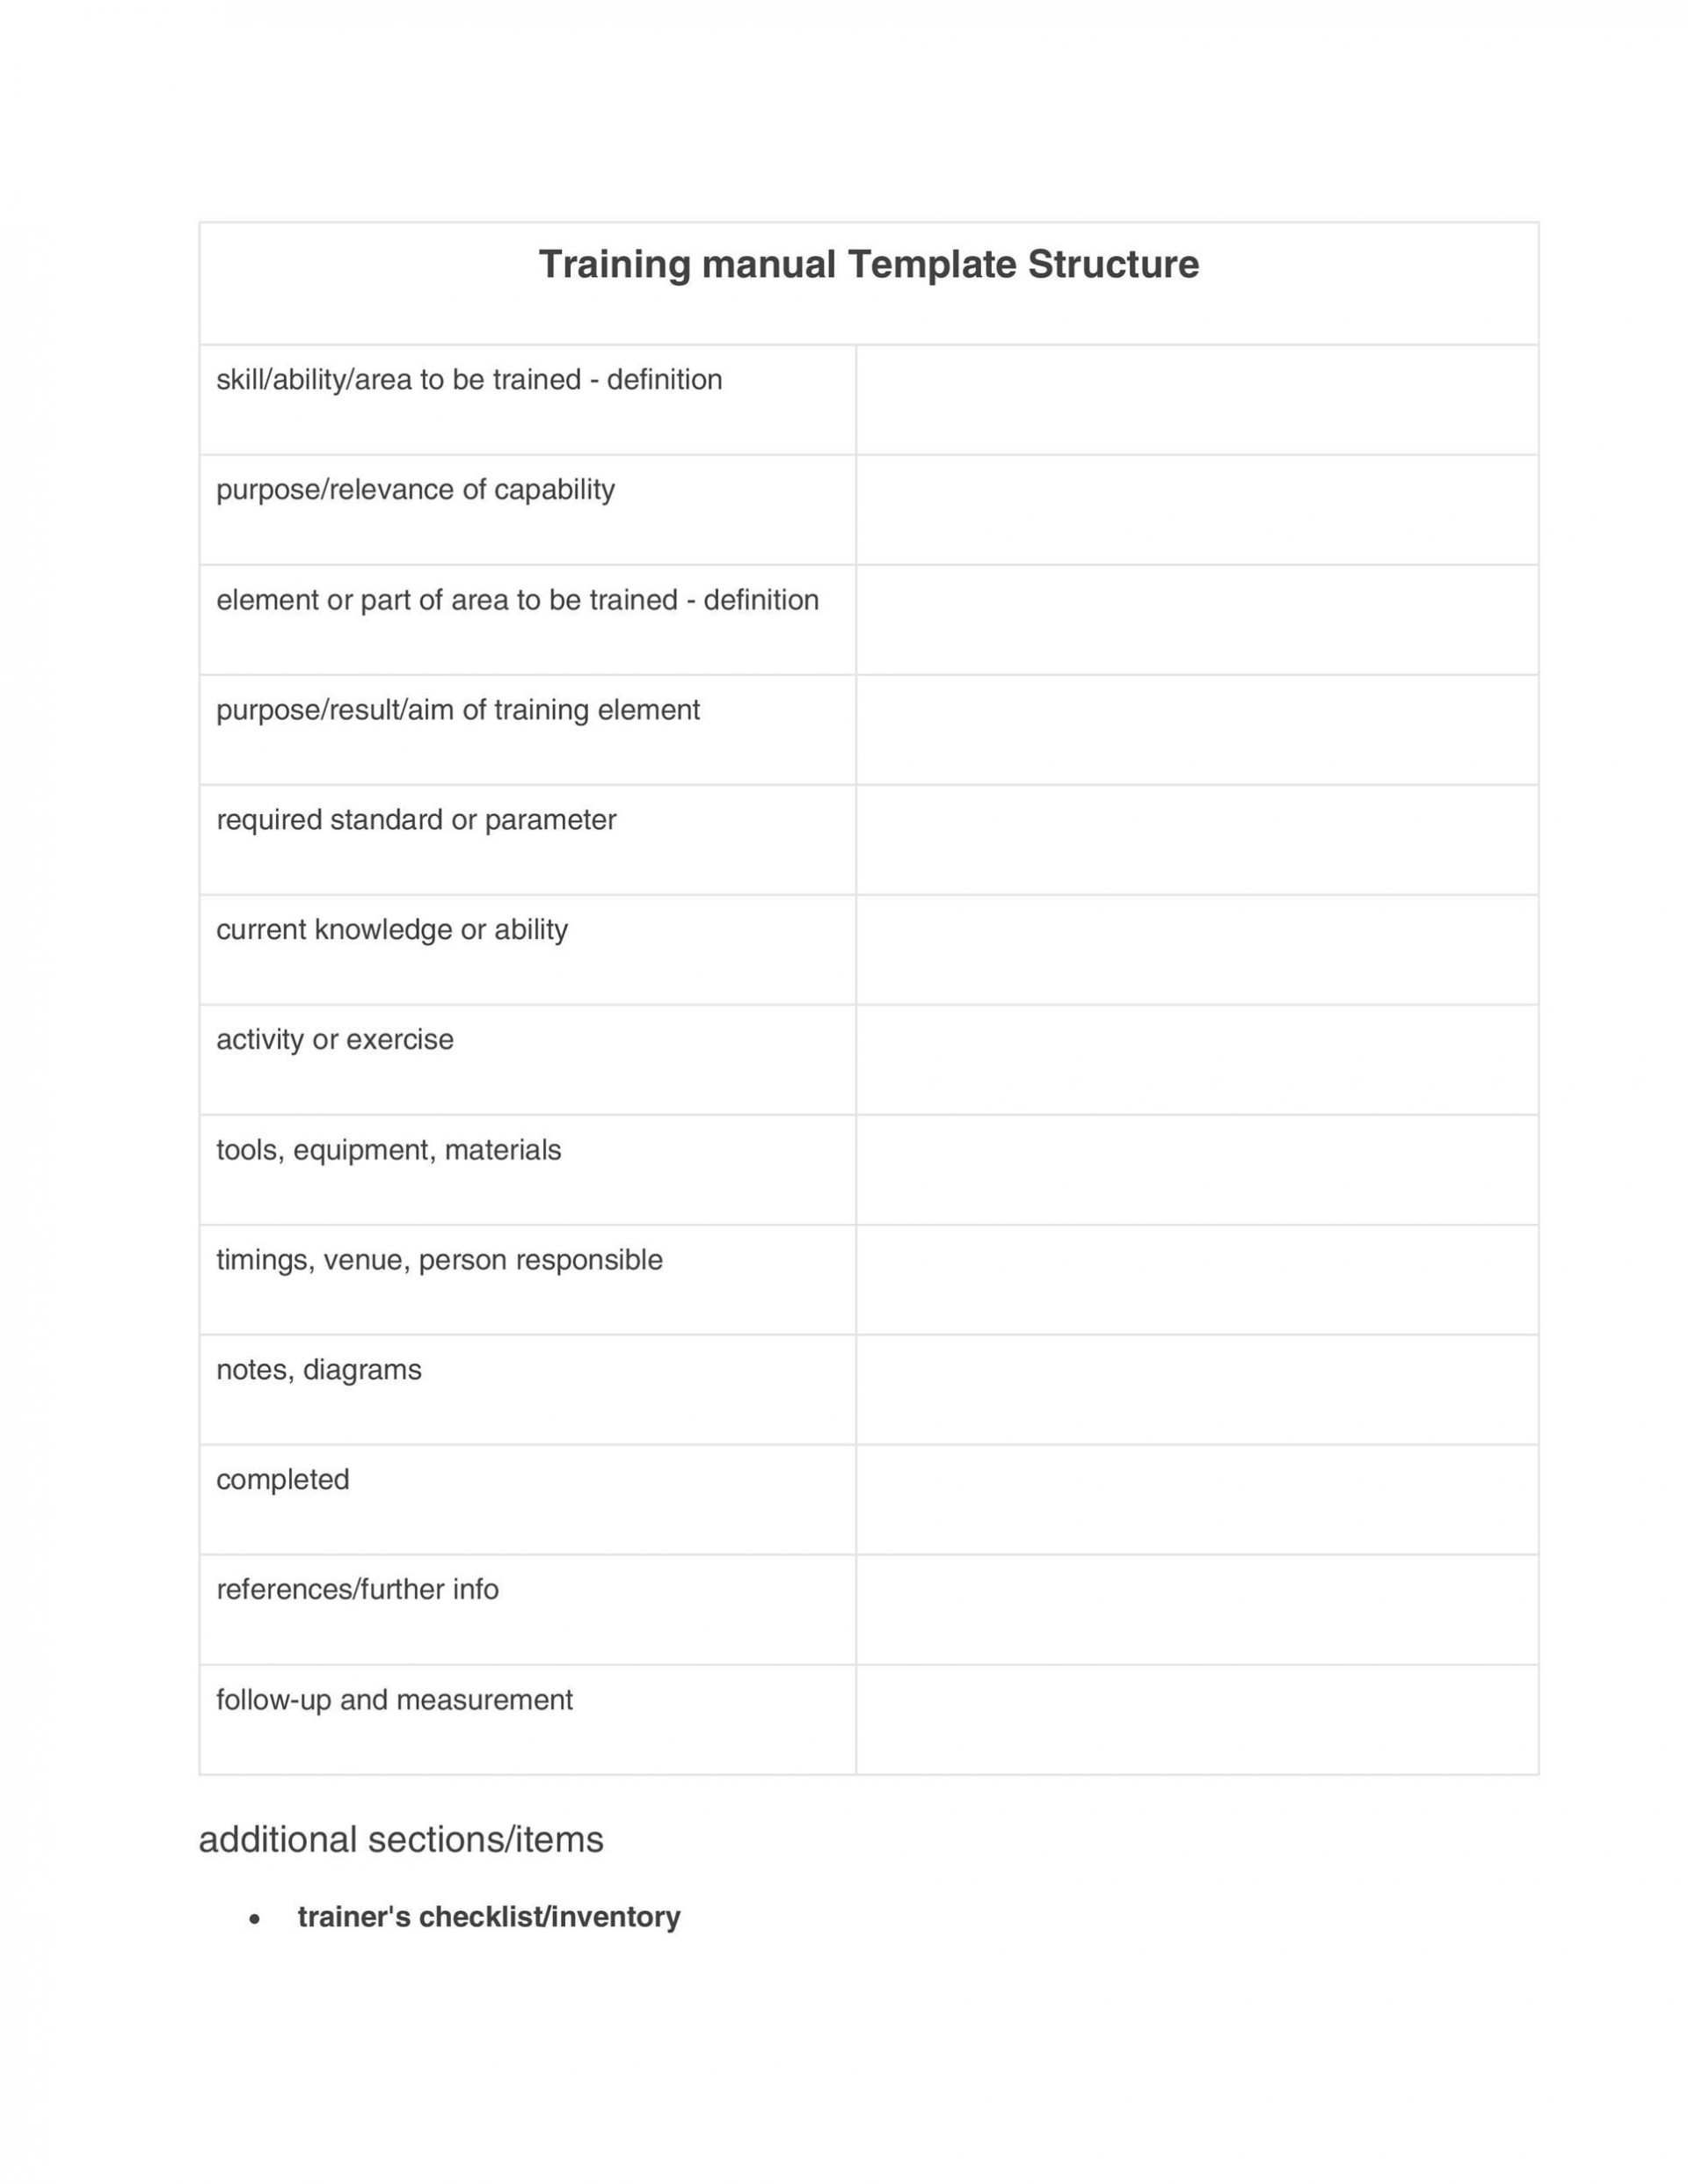 003 Formidable Employee Training Manual Template Inspiration  New Hire Example1920